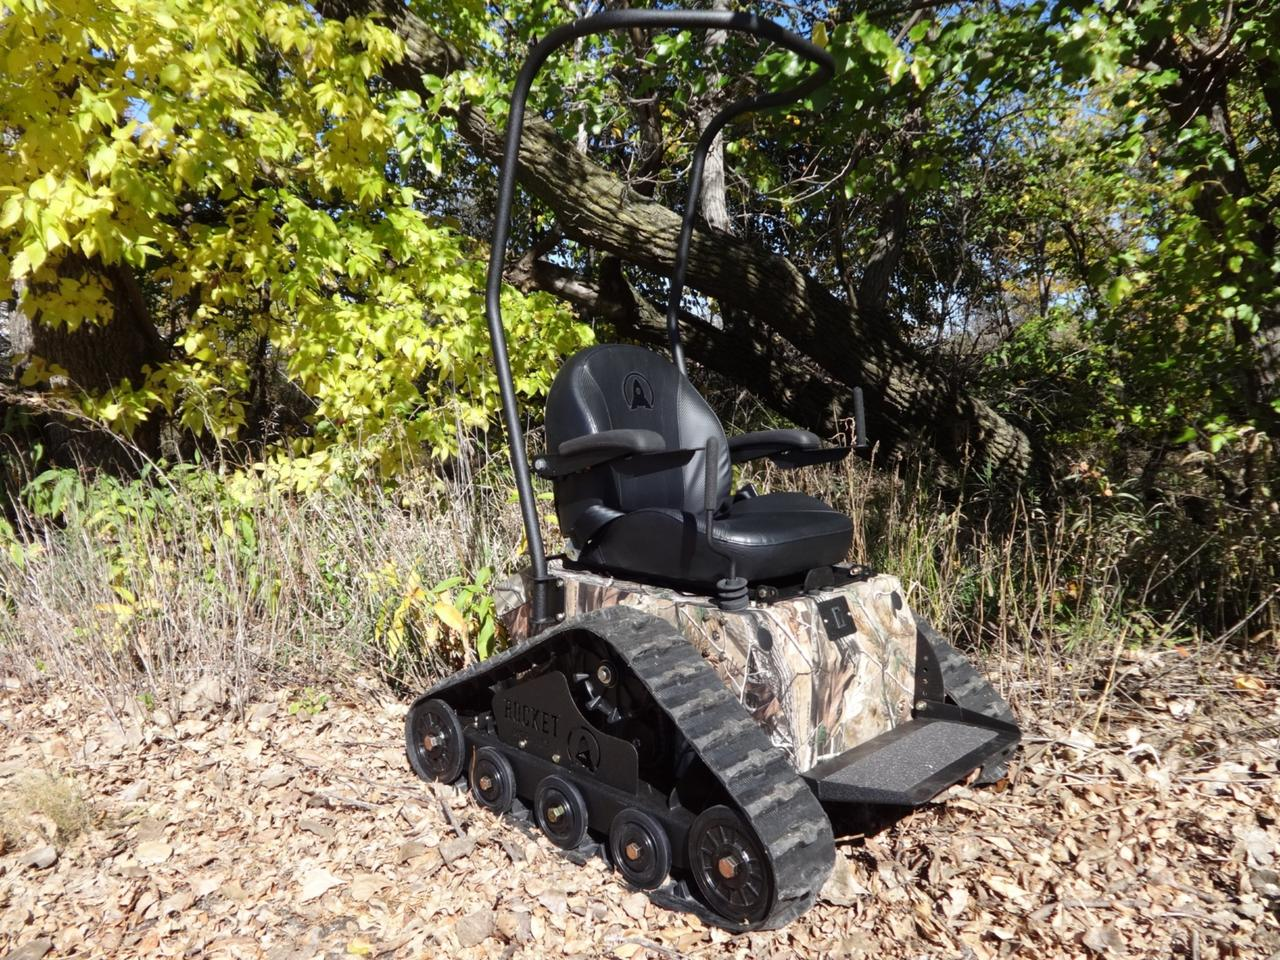 Rocket Mobility's Tomahawk all-terrain wheelchair gives the mobility impaired a chance to enjoy the great outdoors